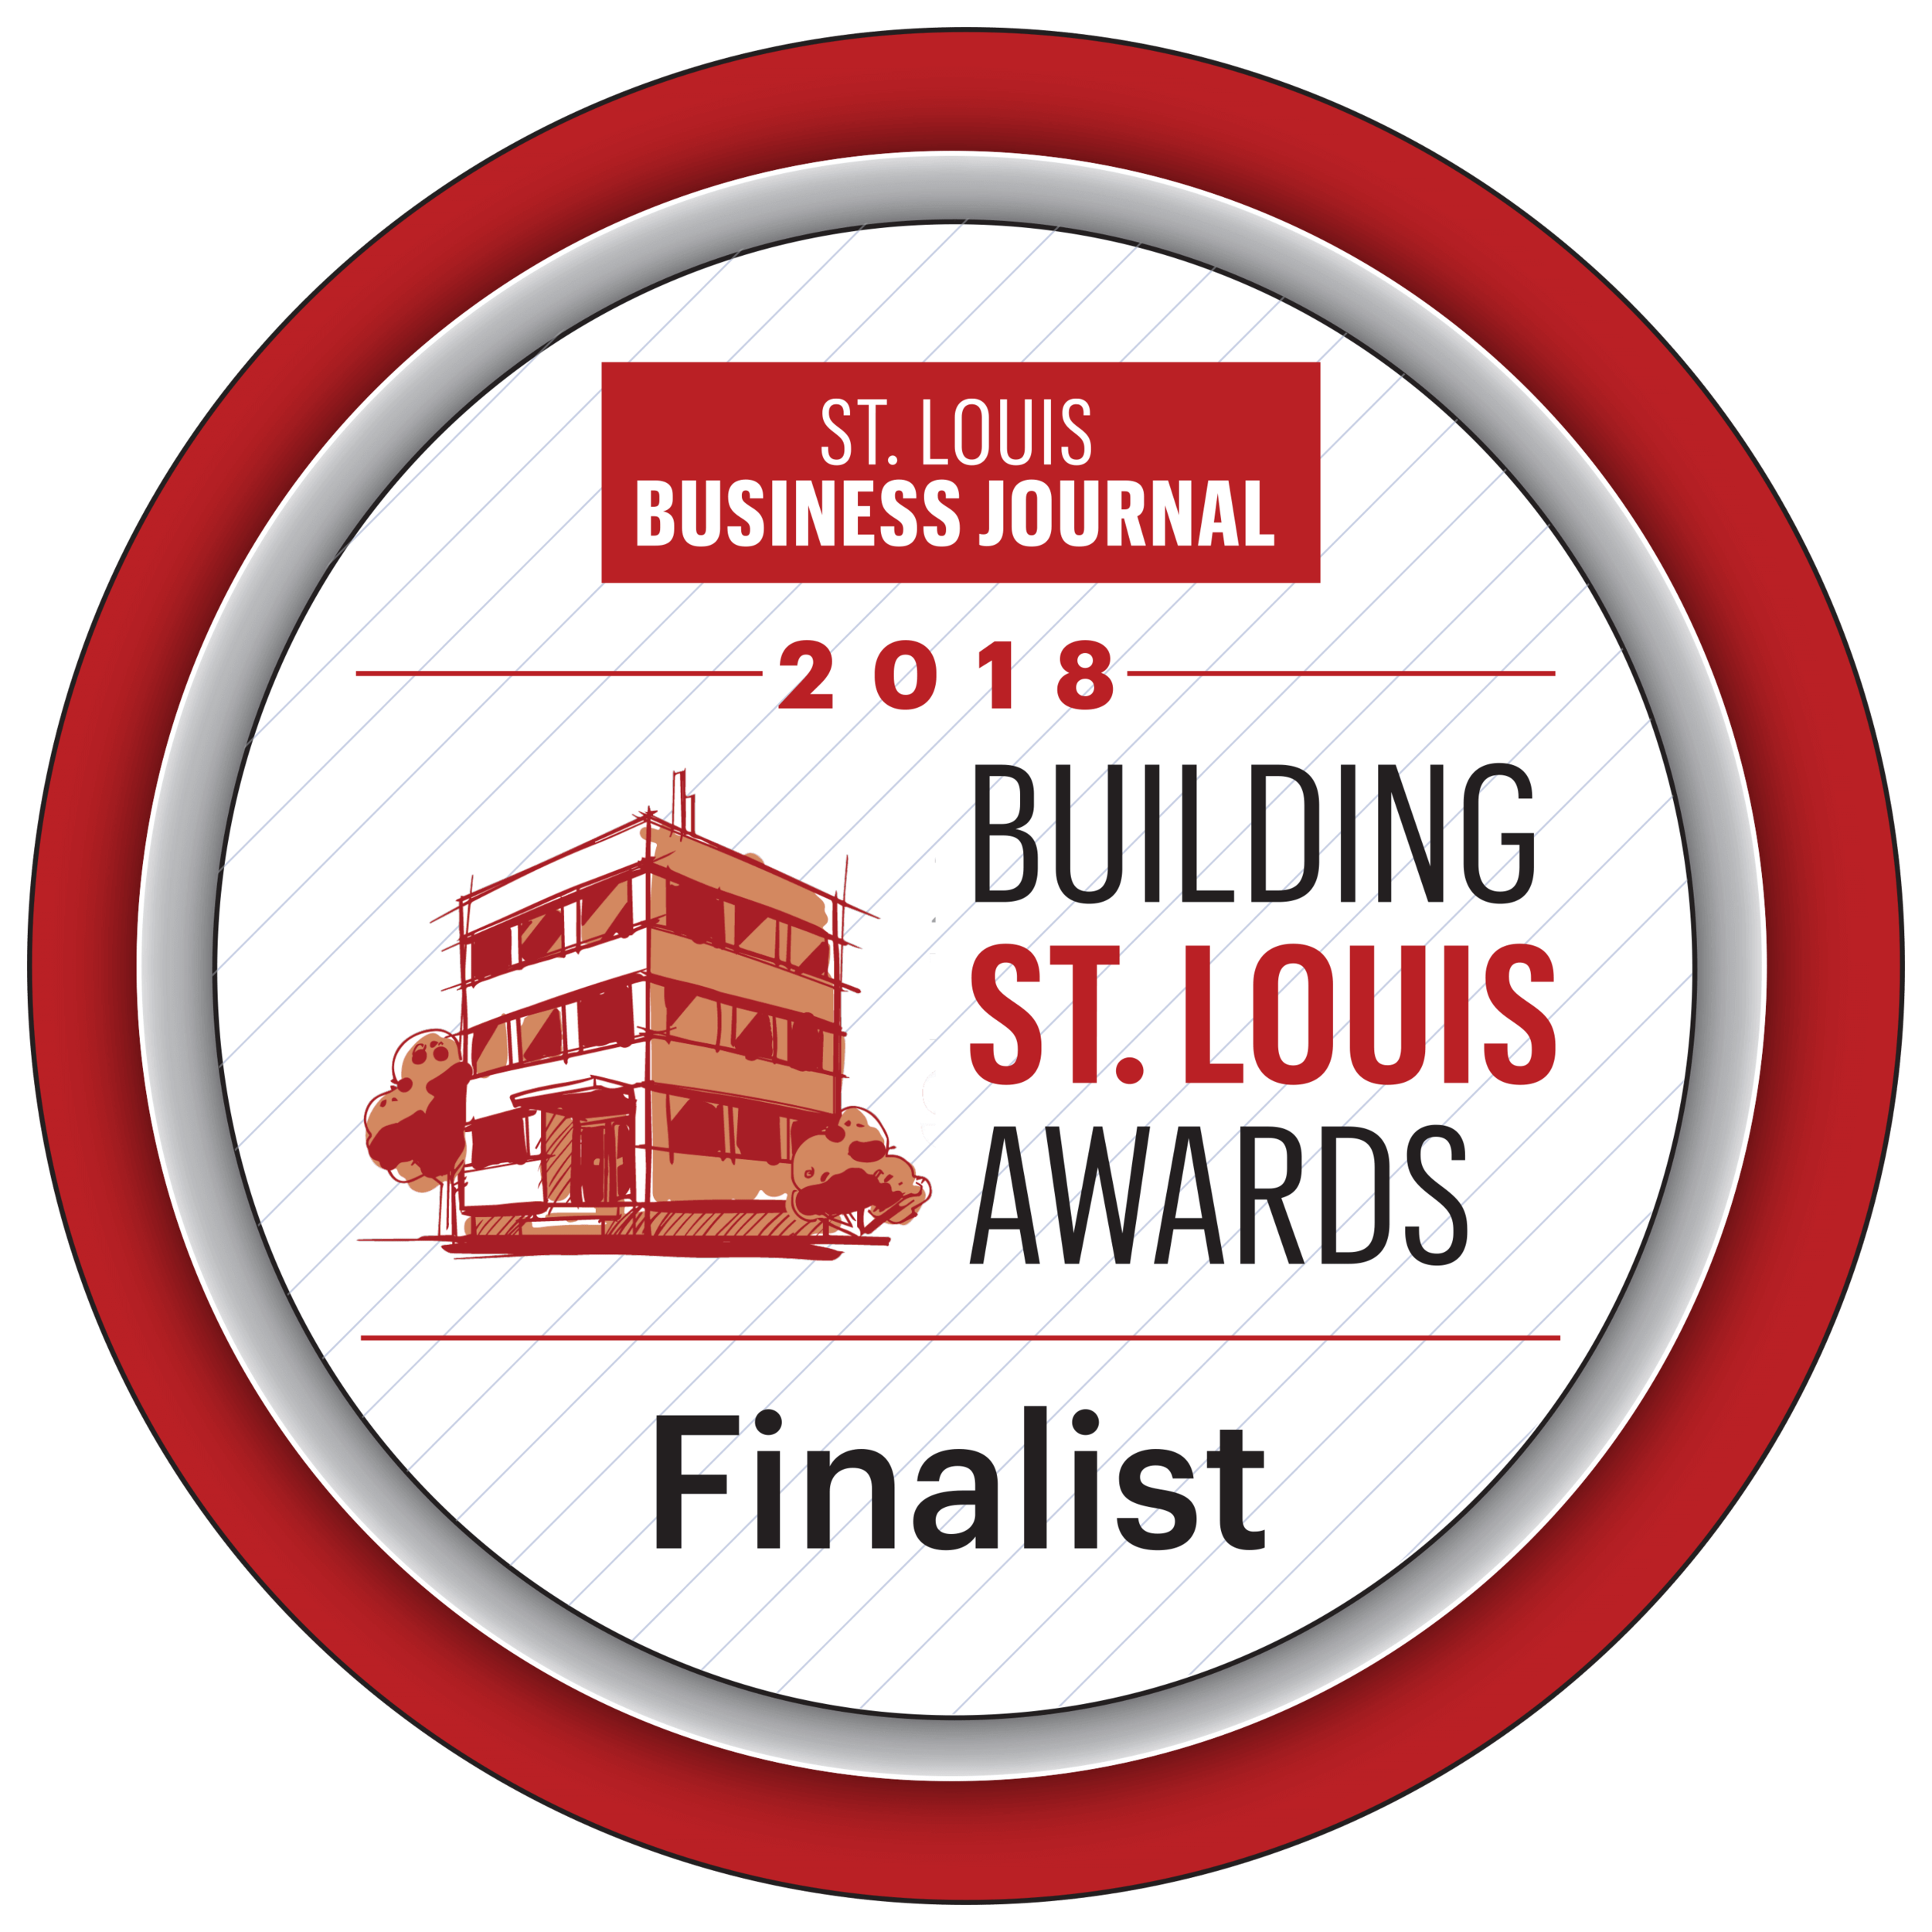 St. Louis Business Journal Building St. Louis Awards Finalist (2018)